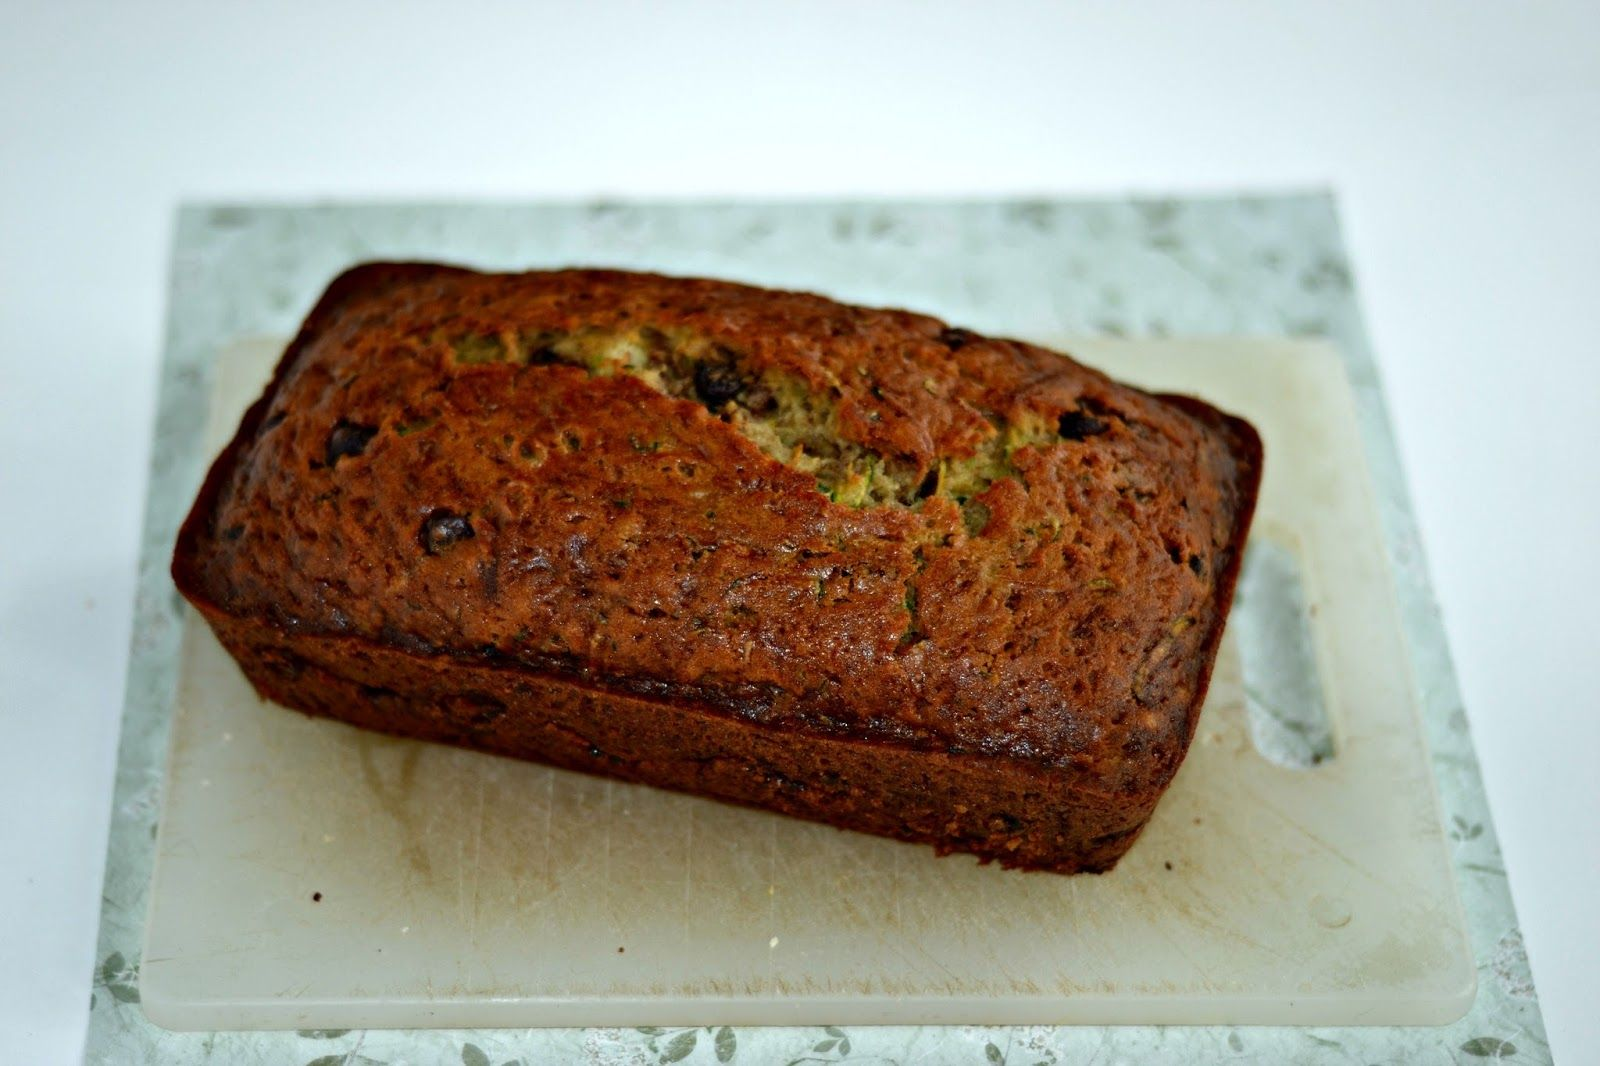 Chocolate Chip Zucchini Bread - Hezzi-D's Books and Cooks